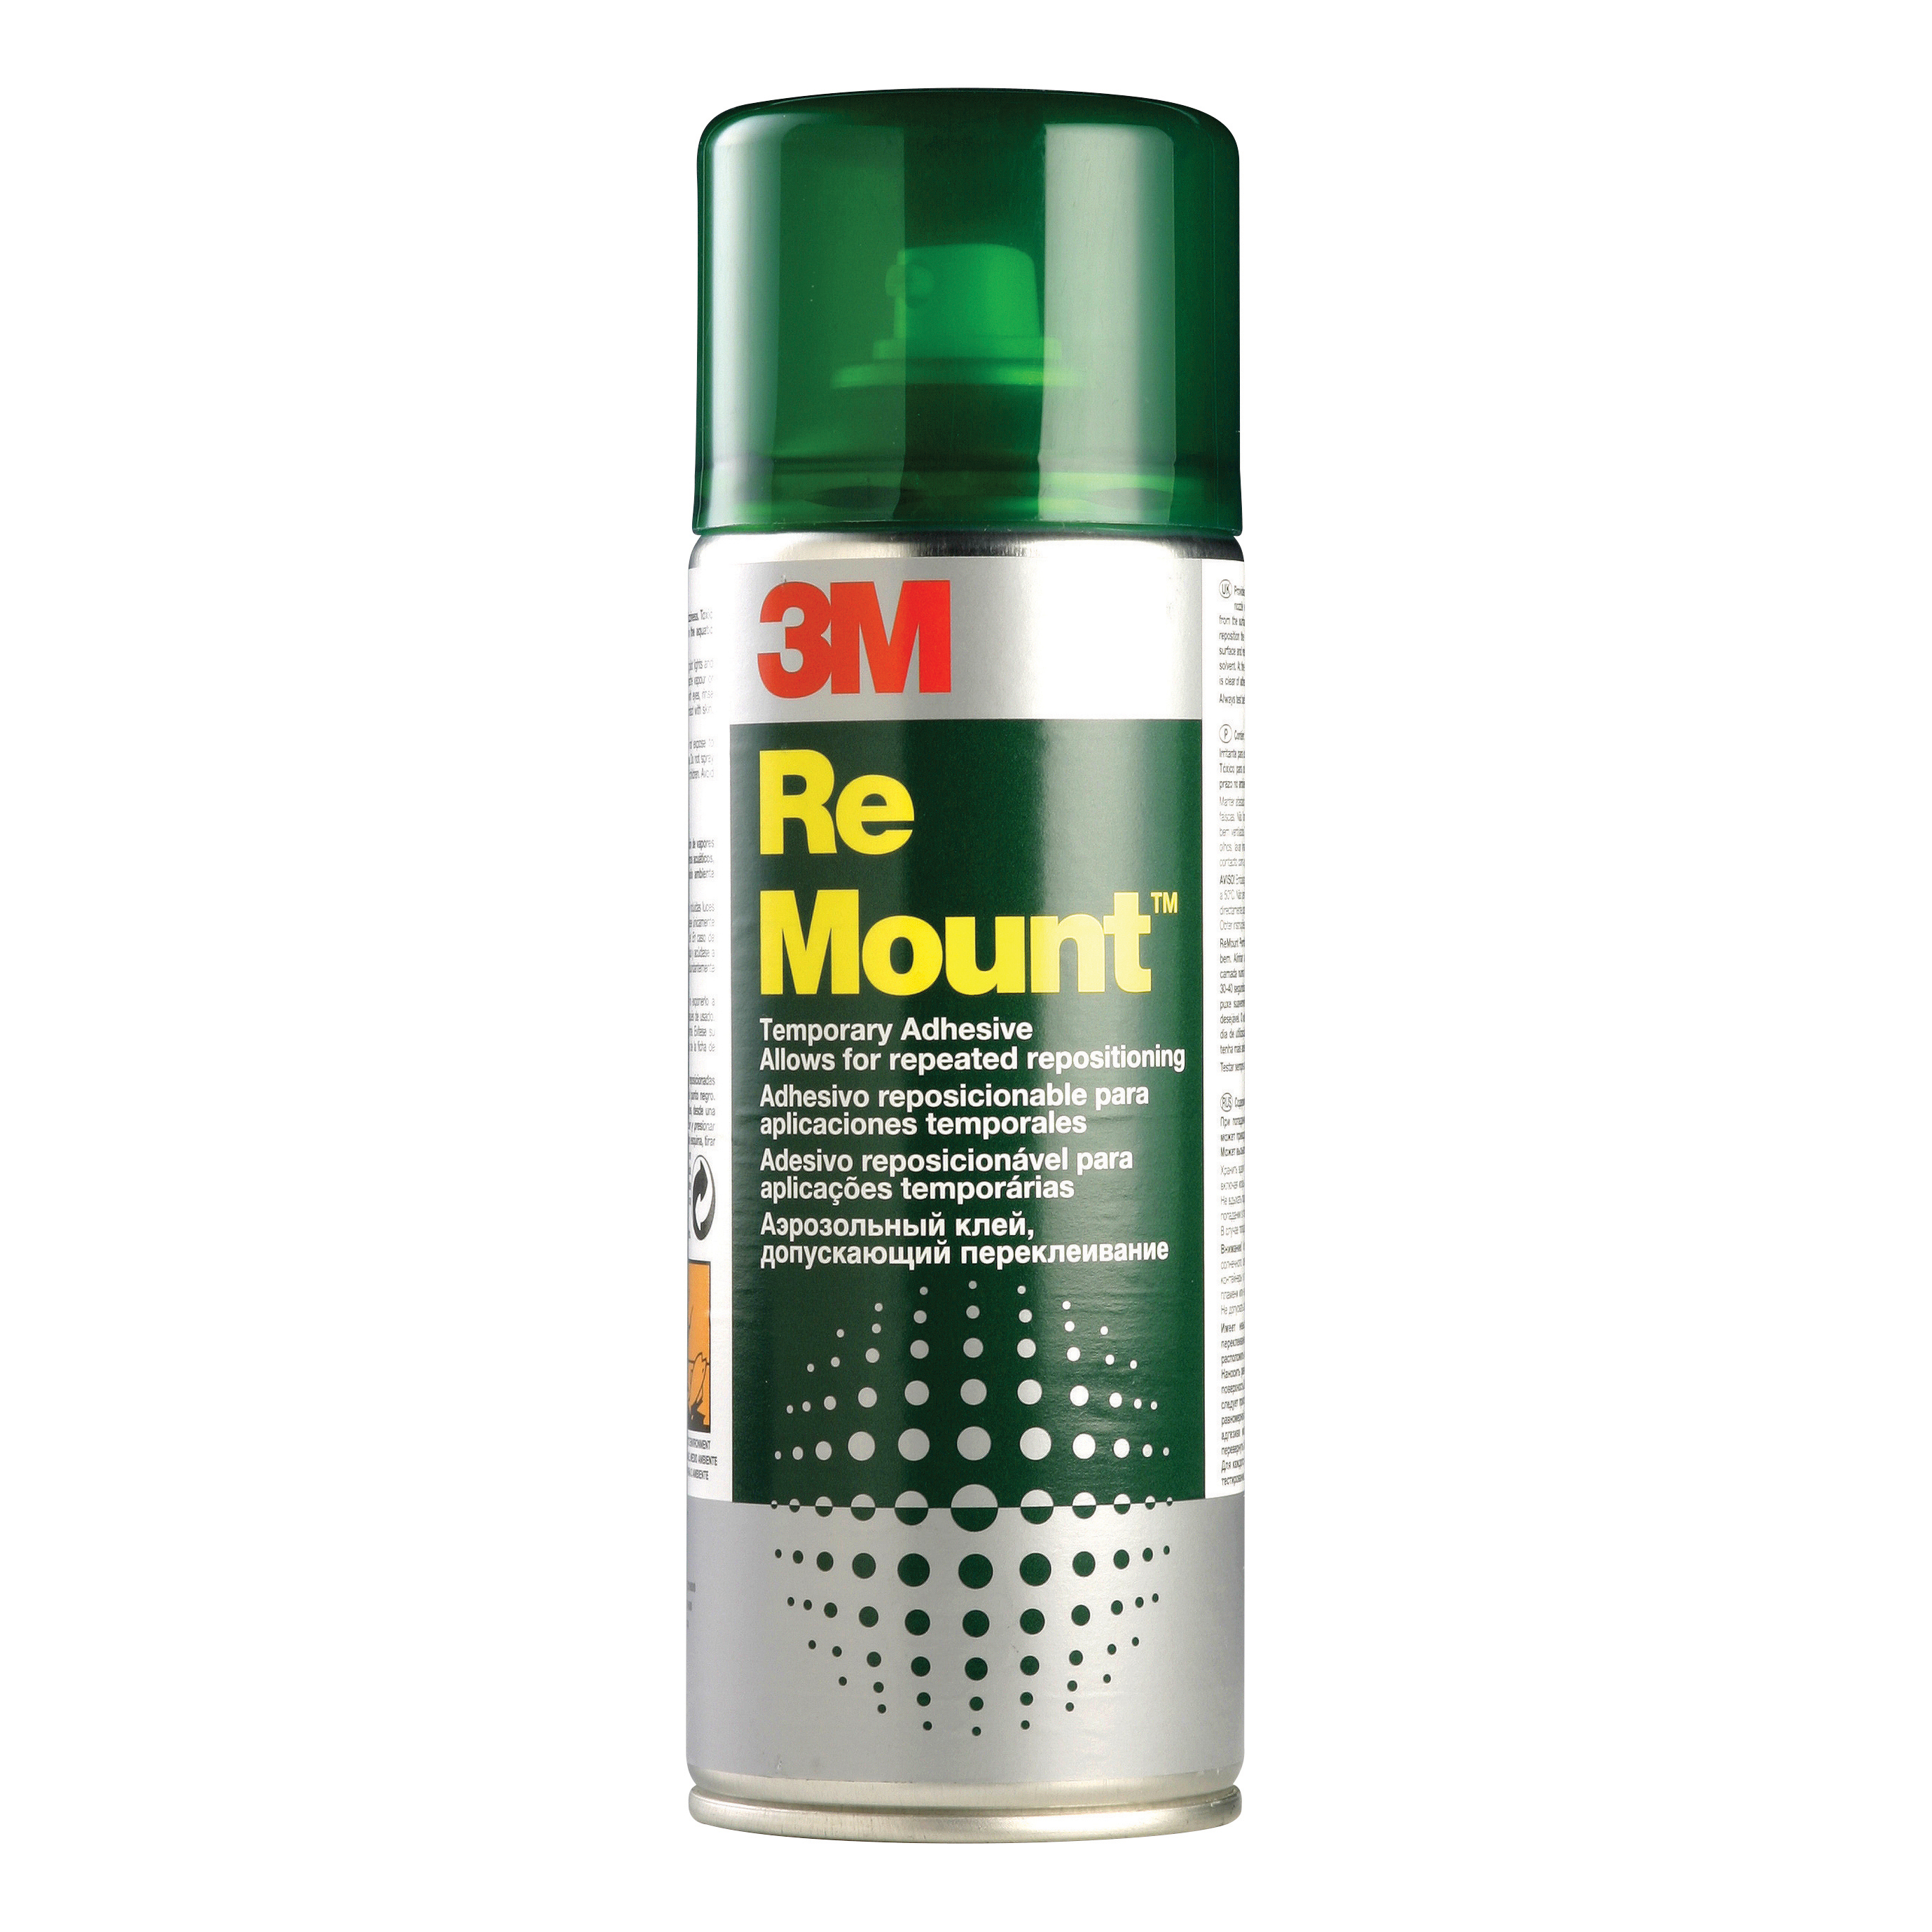 Spray Adhesive 3M ReMount Adhesive Repositionable Spray Can CFC-Free 400ml Ref GS200018983